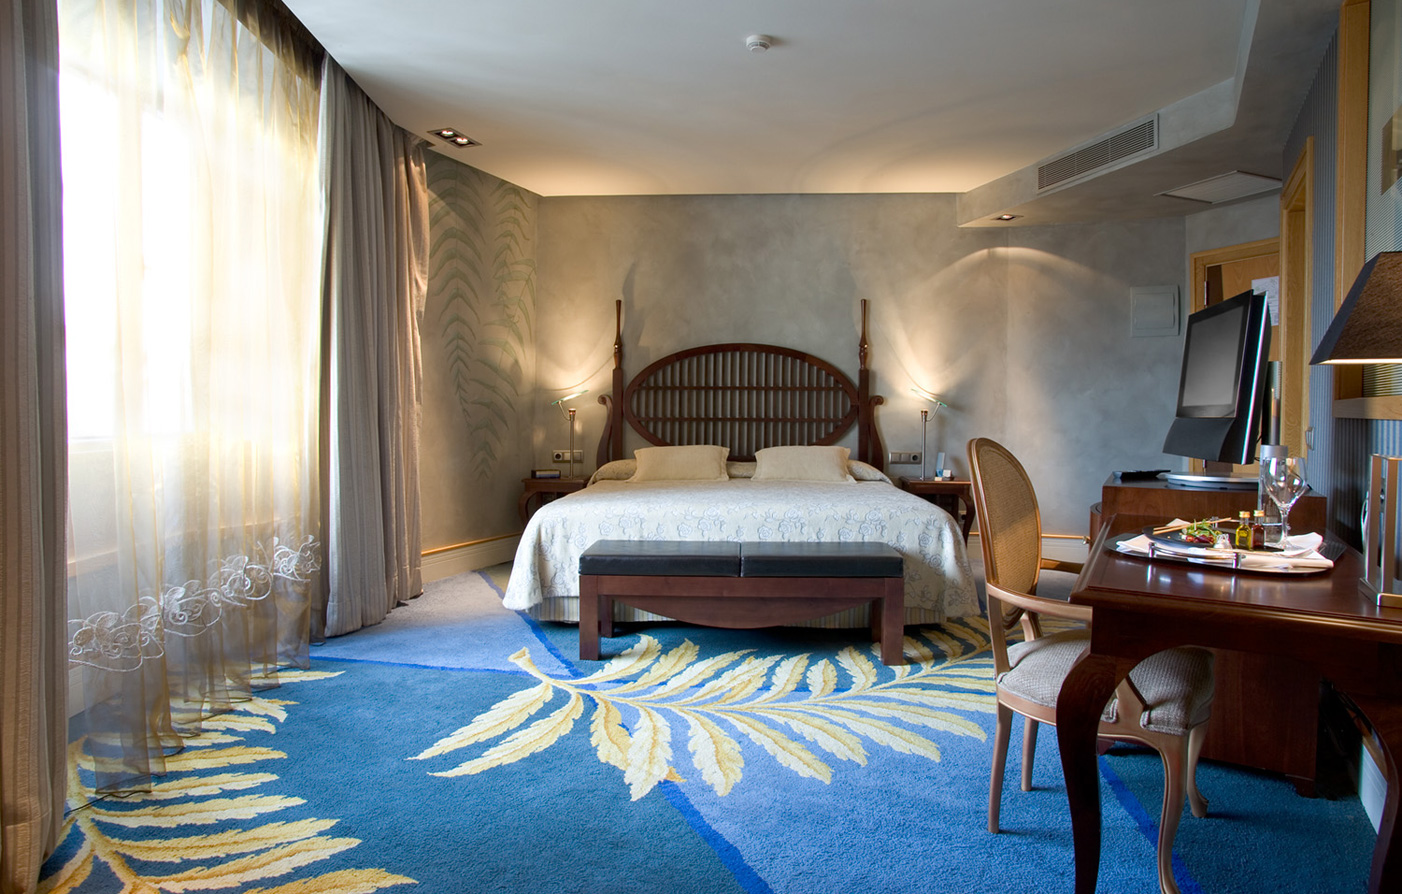 Accommodations Nh Collection Madrid Paseo Del Prado In Madrid